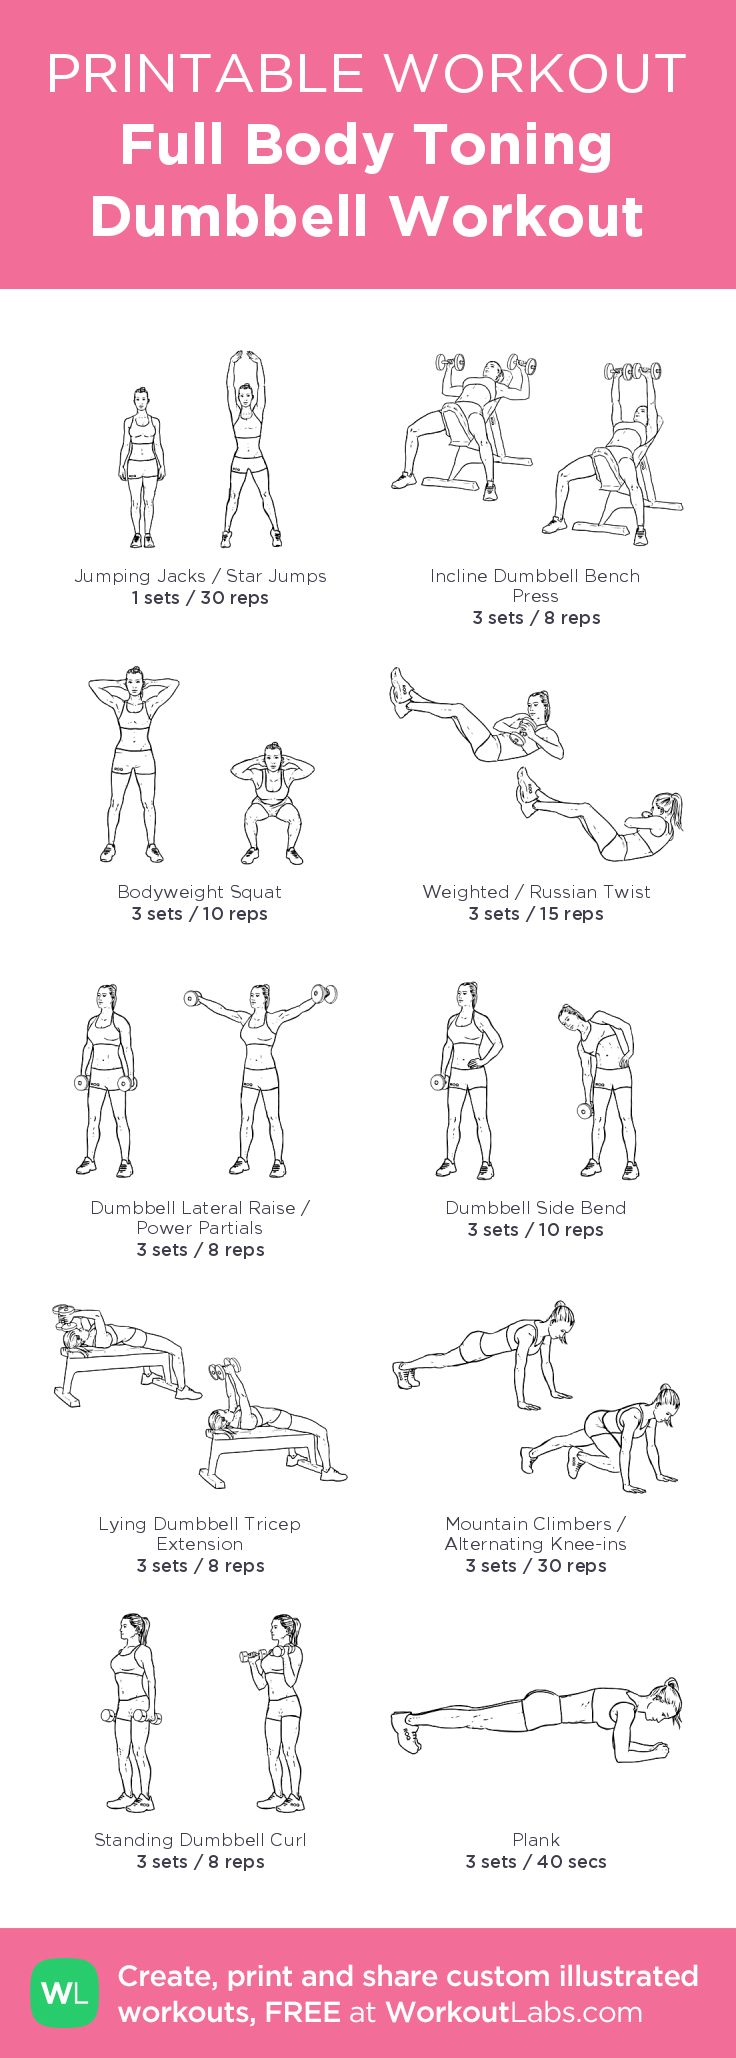 Full Body Toning Dumbbell Workout My Visual Created At Workoutlabs Com Click